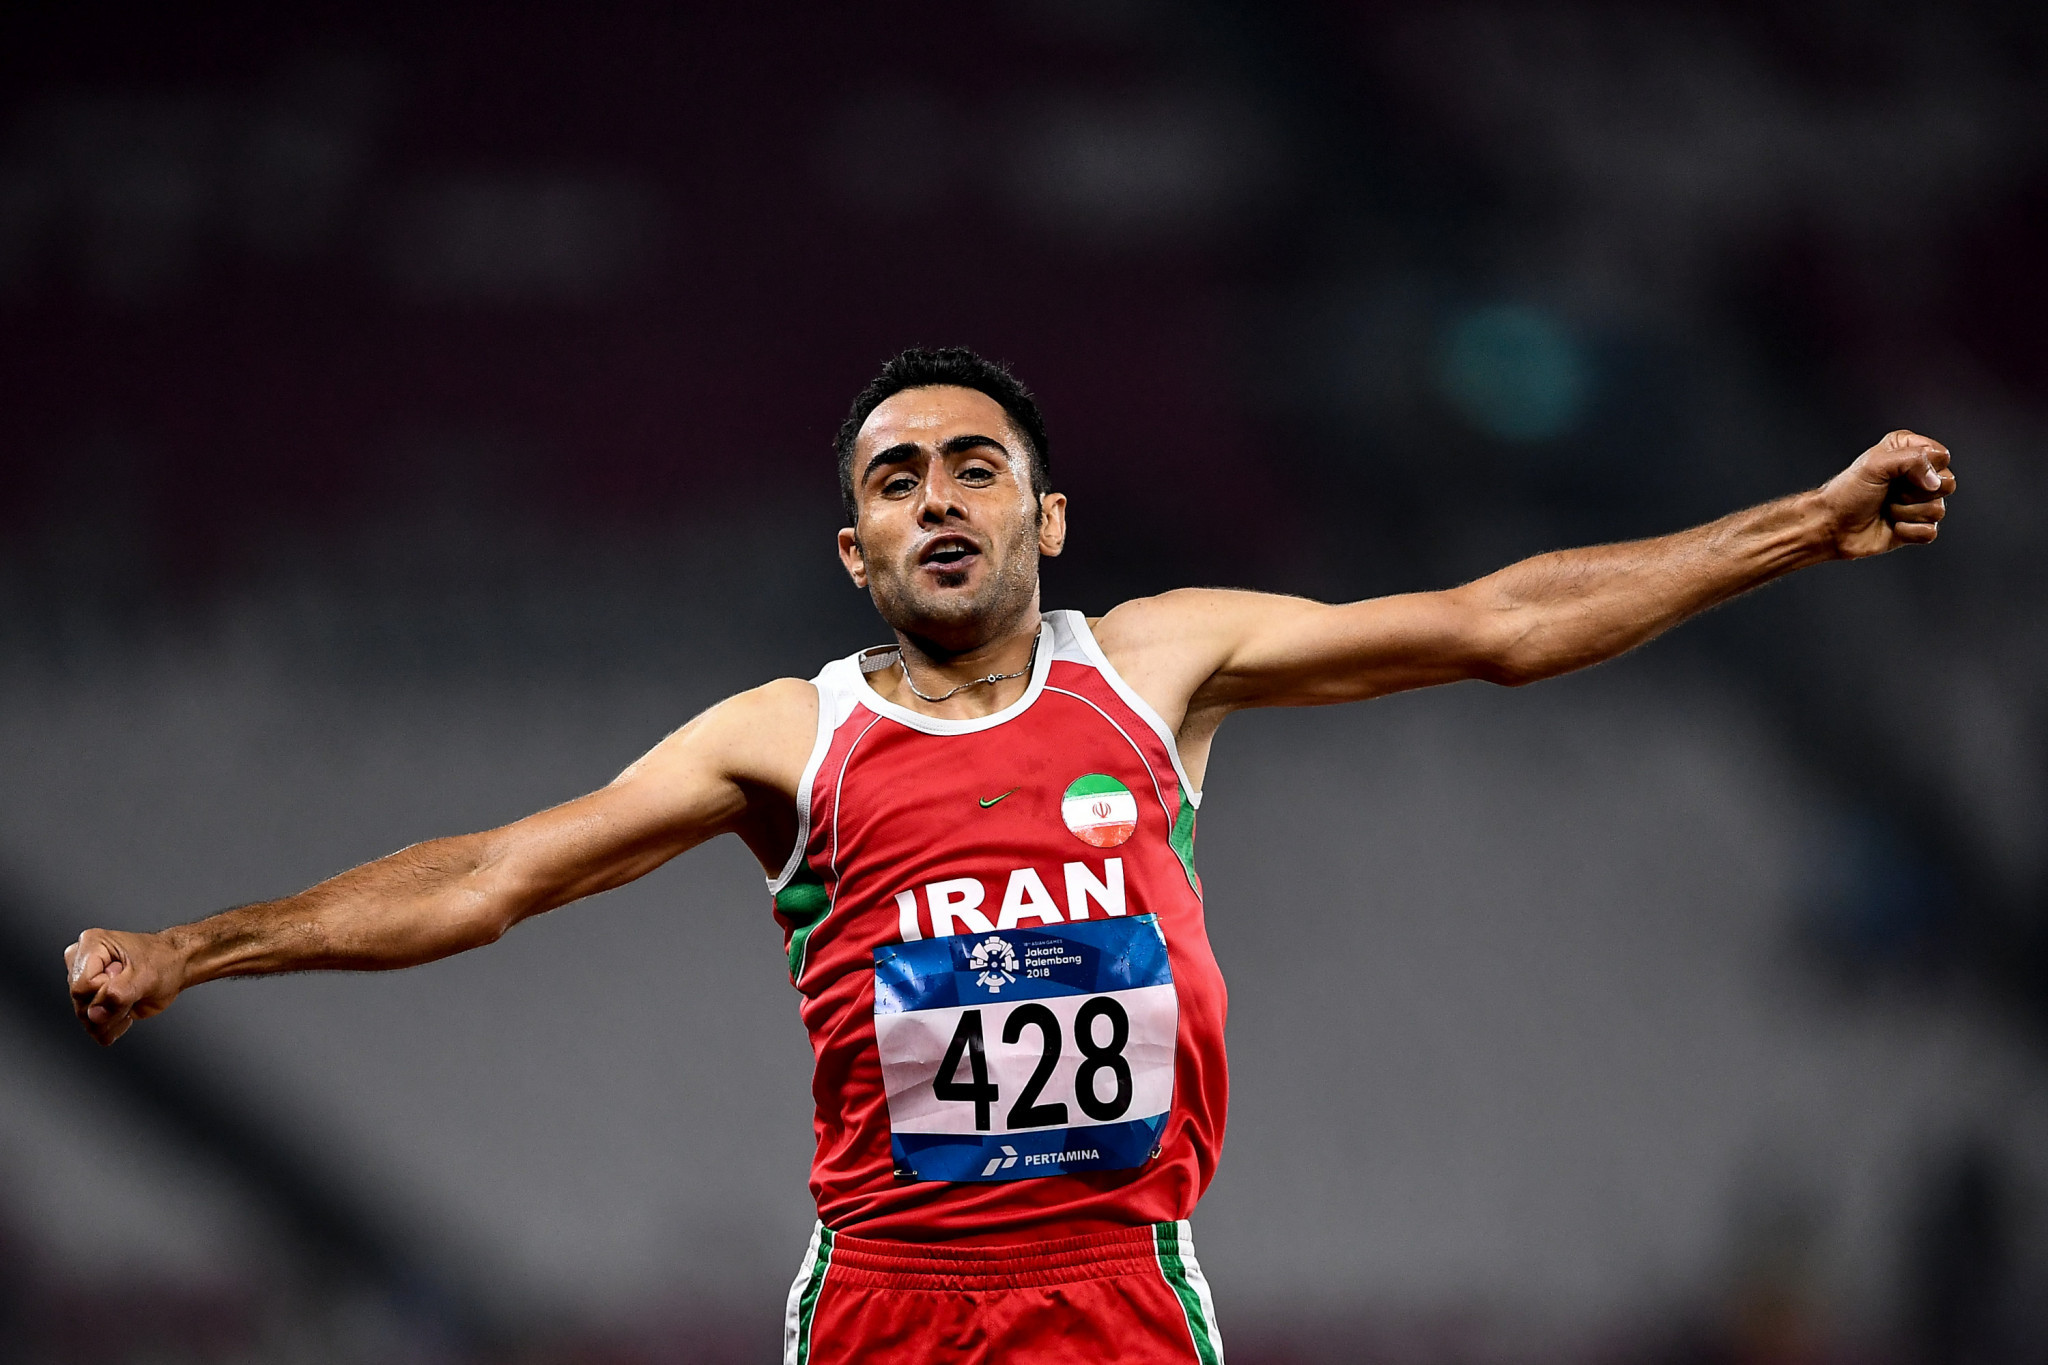 Iranian Asian Games steeplechase champion Keyhani receives provisional suspension for doping violation